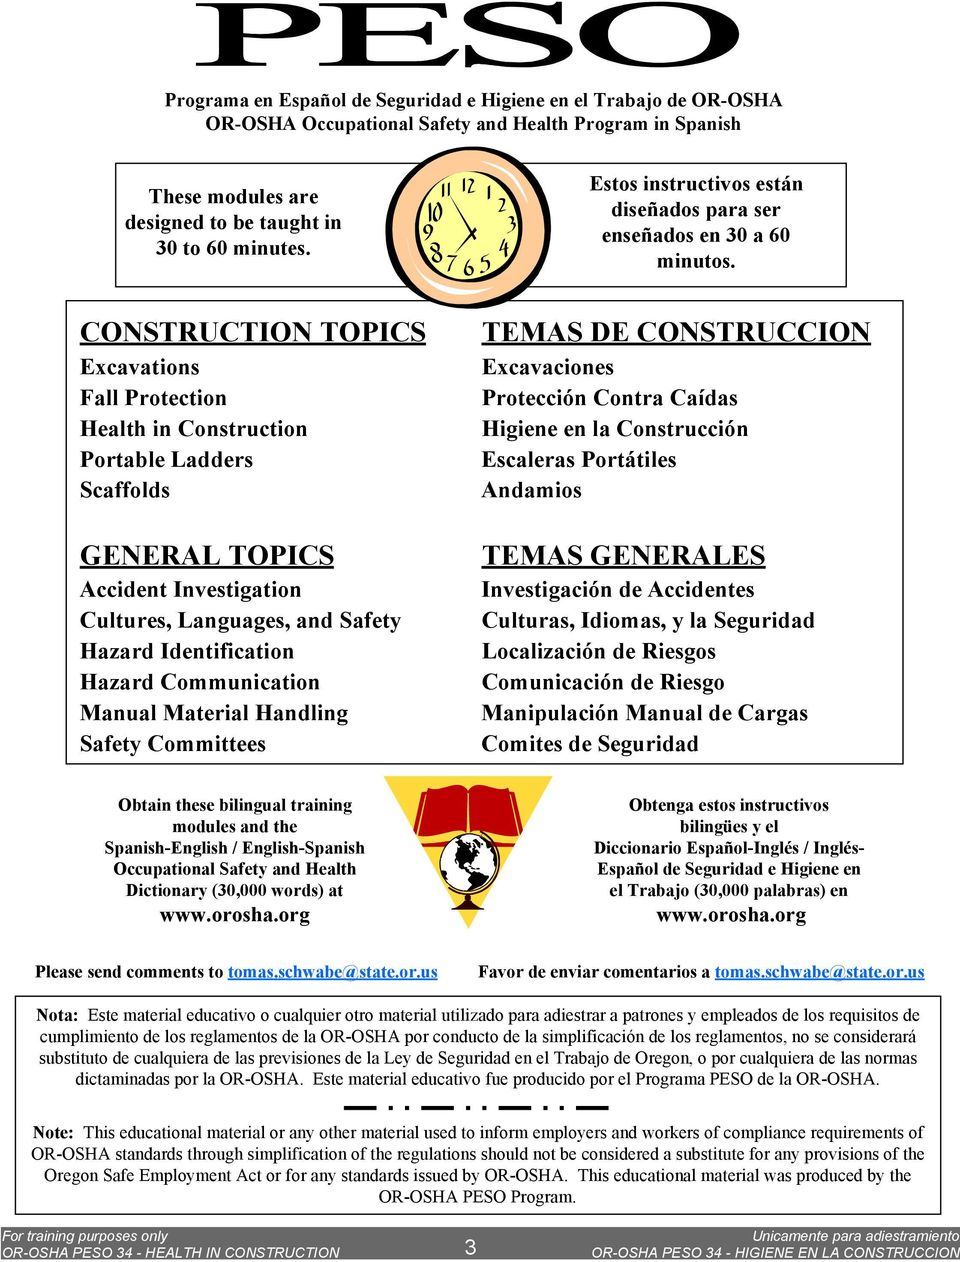 CONSTRUCTION TOPICS Excavations Fall Protection Health in Construction Portable Ladders Scaffolds GENERAL TOPICS Accident Investigation Cultures, Languages, and Safety Hazard Identification Hazard